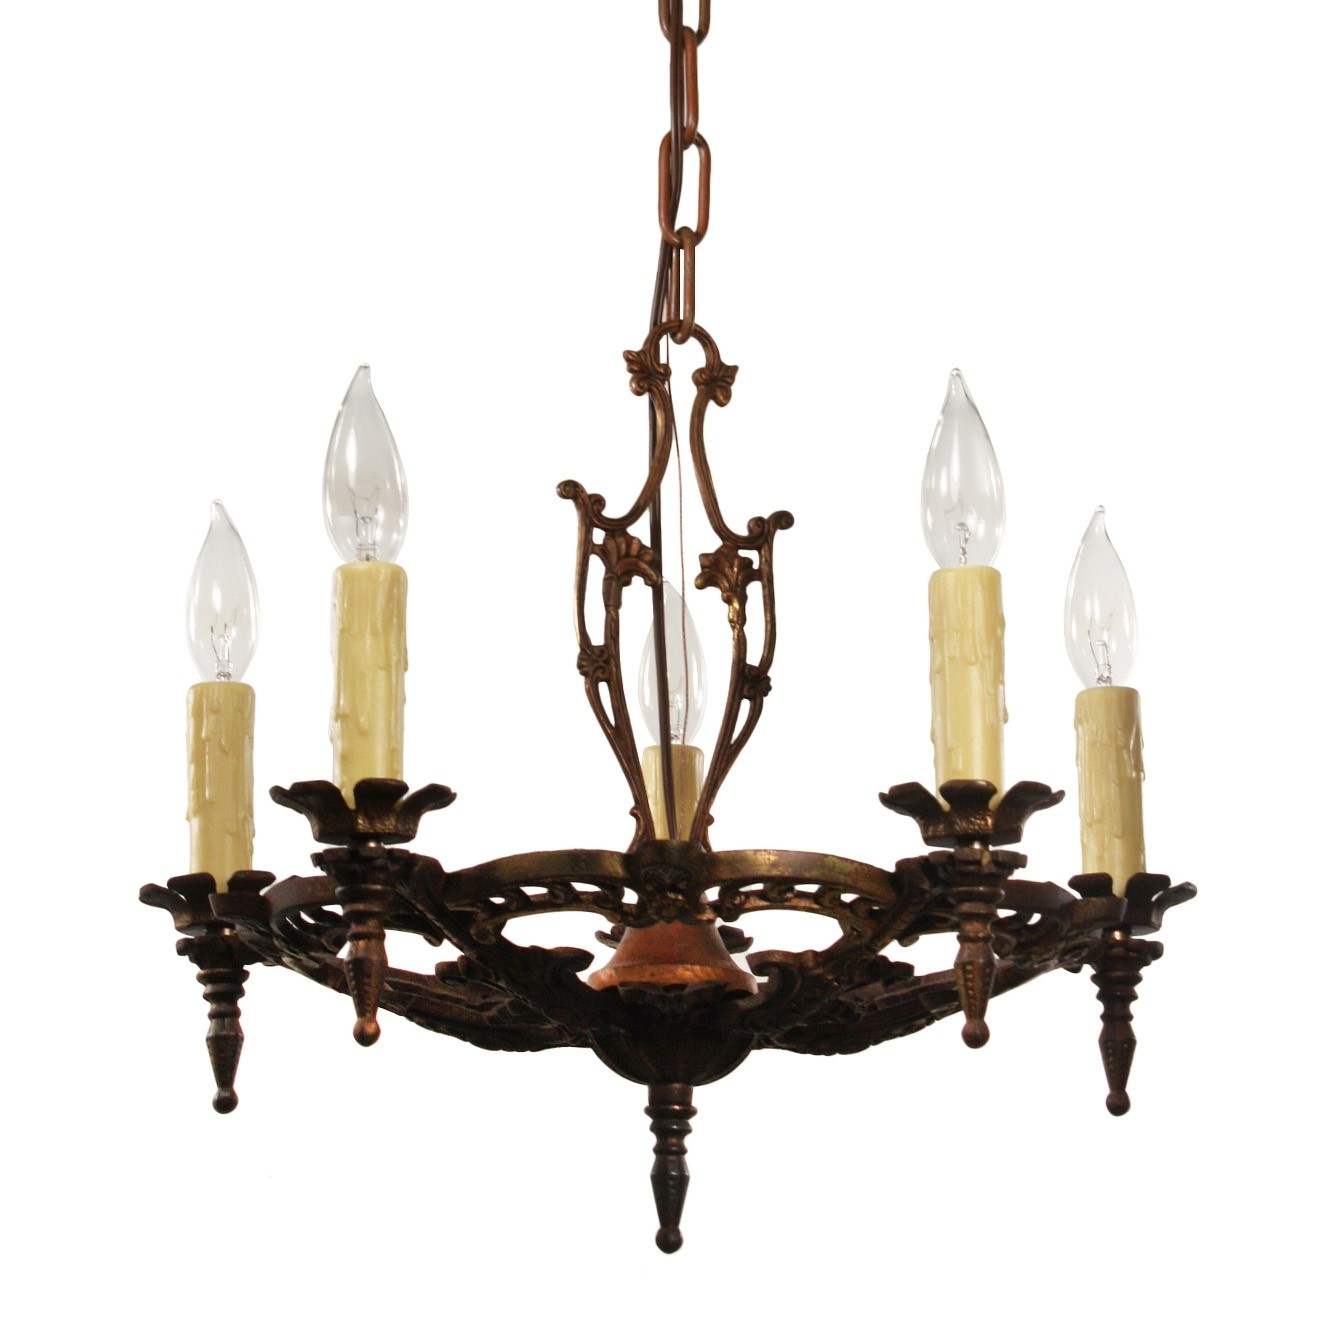 Antique Chandelier In Cast Iron Antique Lighting Preservation Intended For Cast Iron Antique Chandelier (#4 of 12)